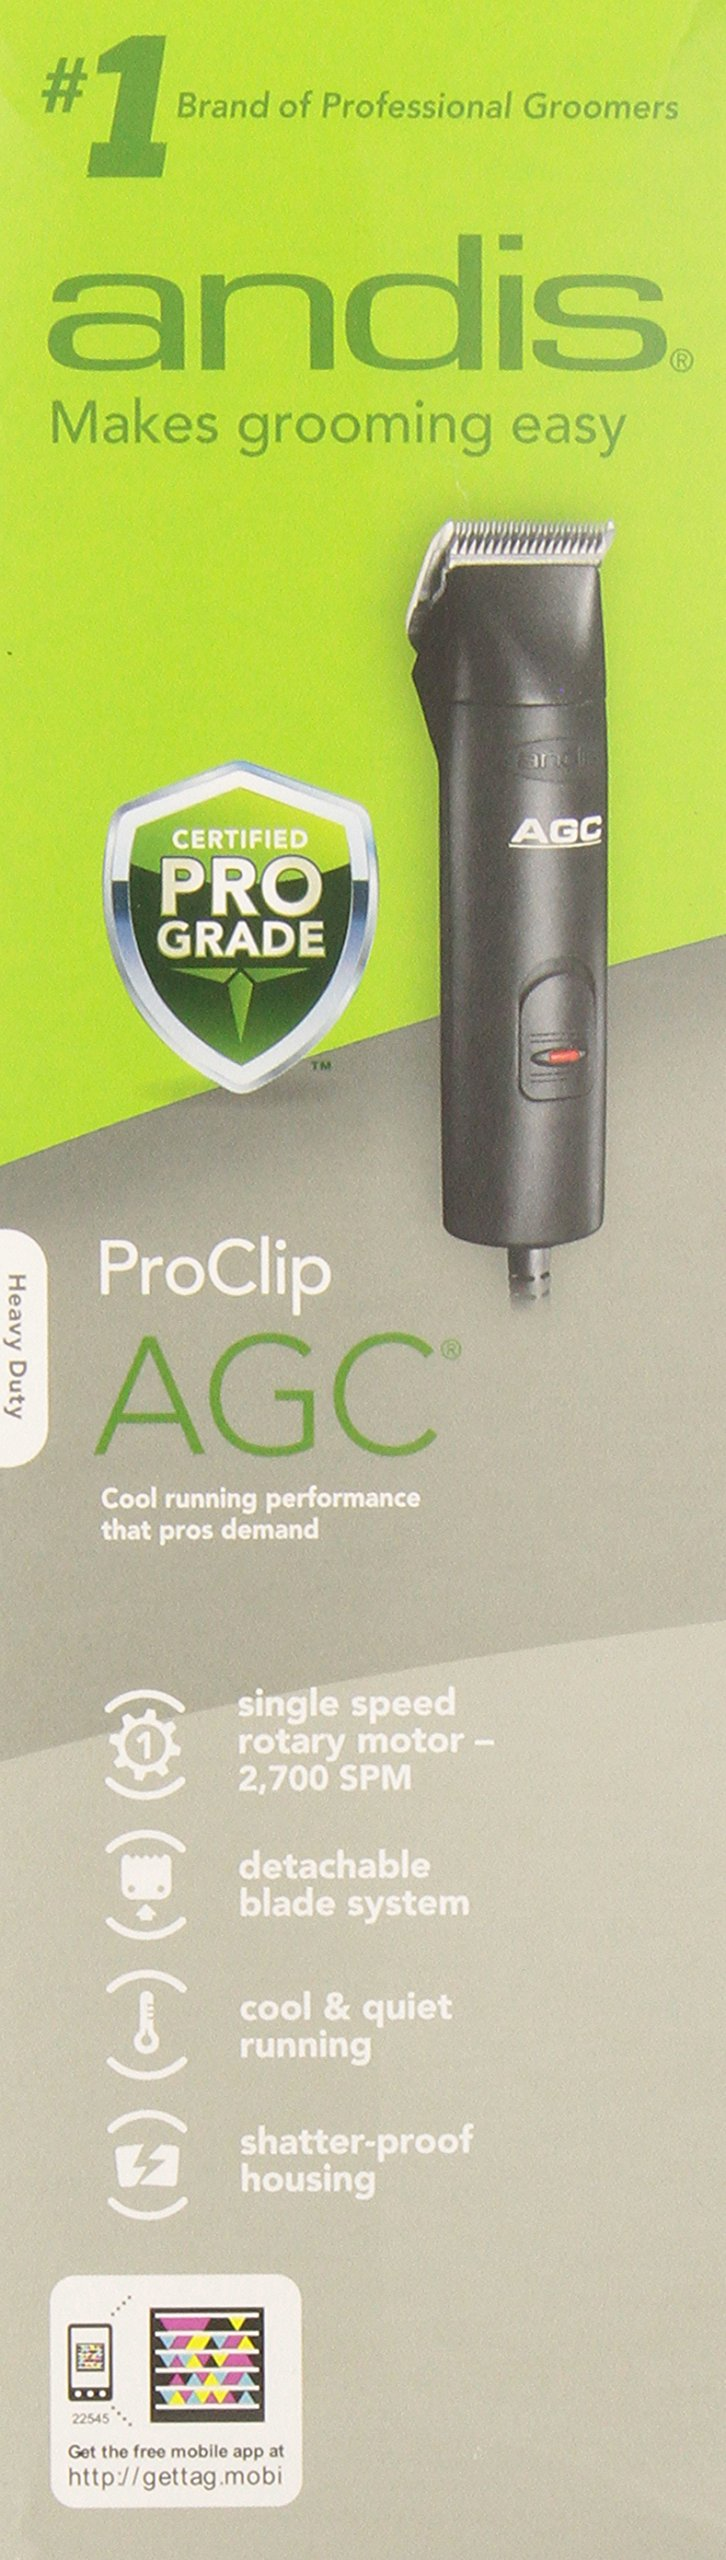 Andis AGC 1-Speed Detachable Blade Clipper Kit, Professional Animal Grooming, AGC, Black  (22545)